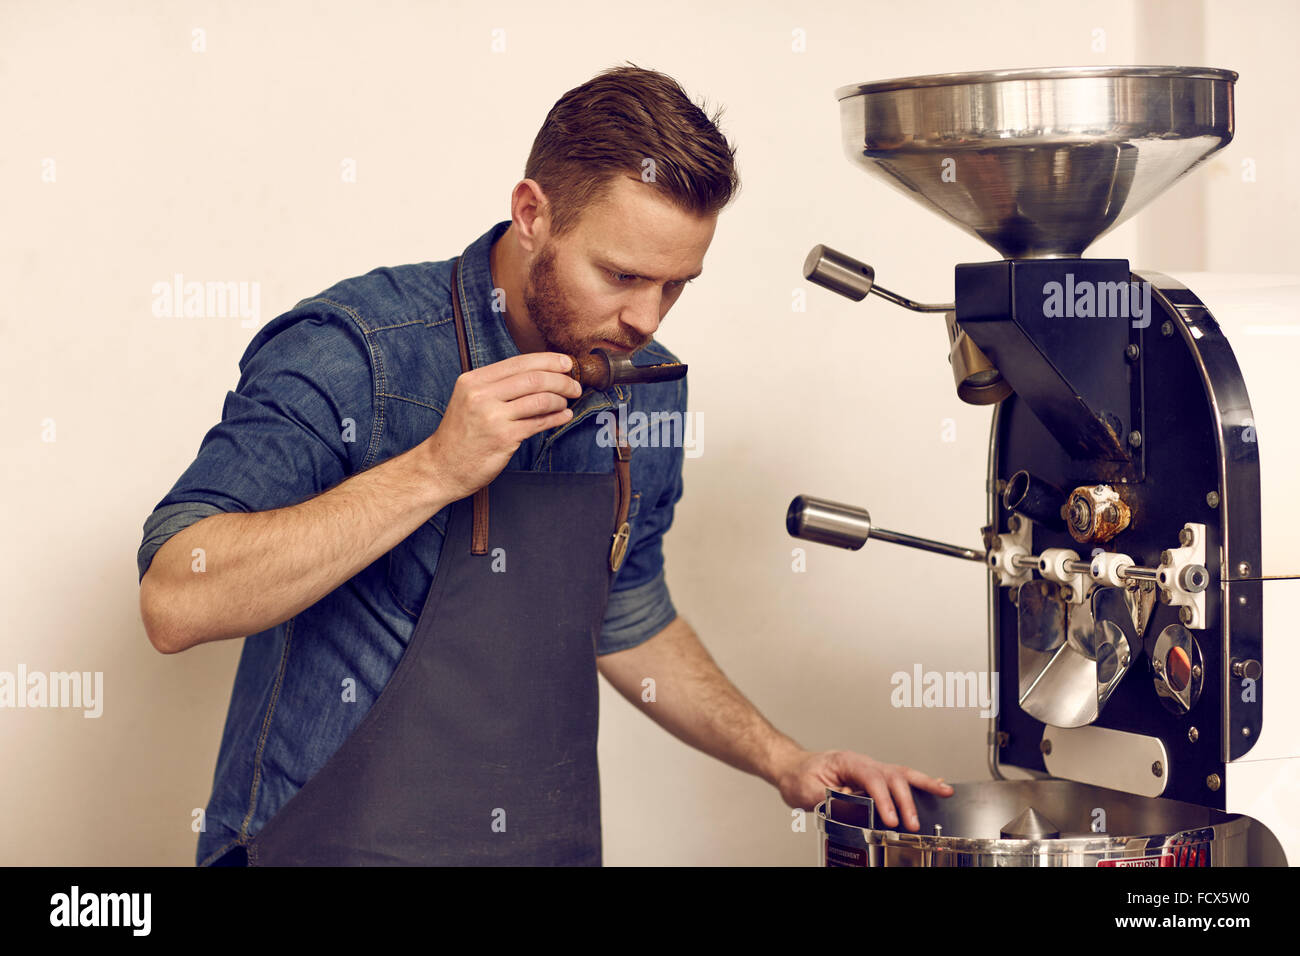 Coffee connoiseur checking freshly roasted beans for full aroma - Stock Image